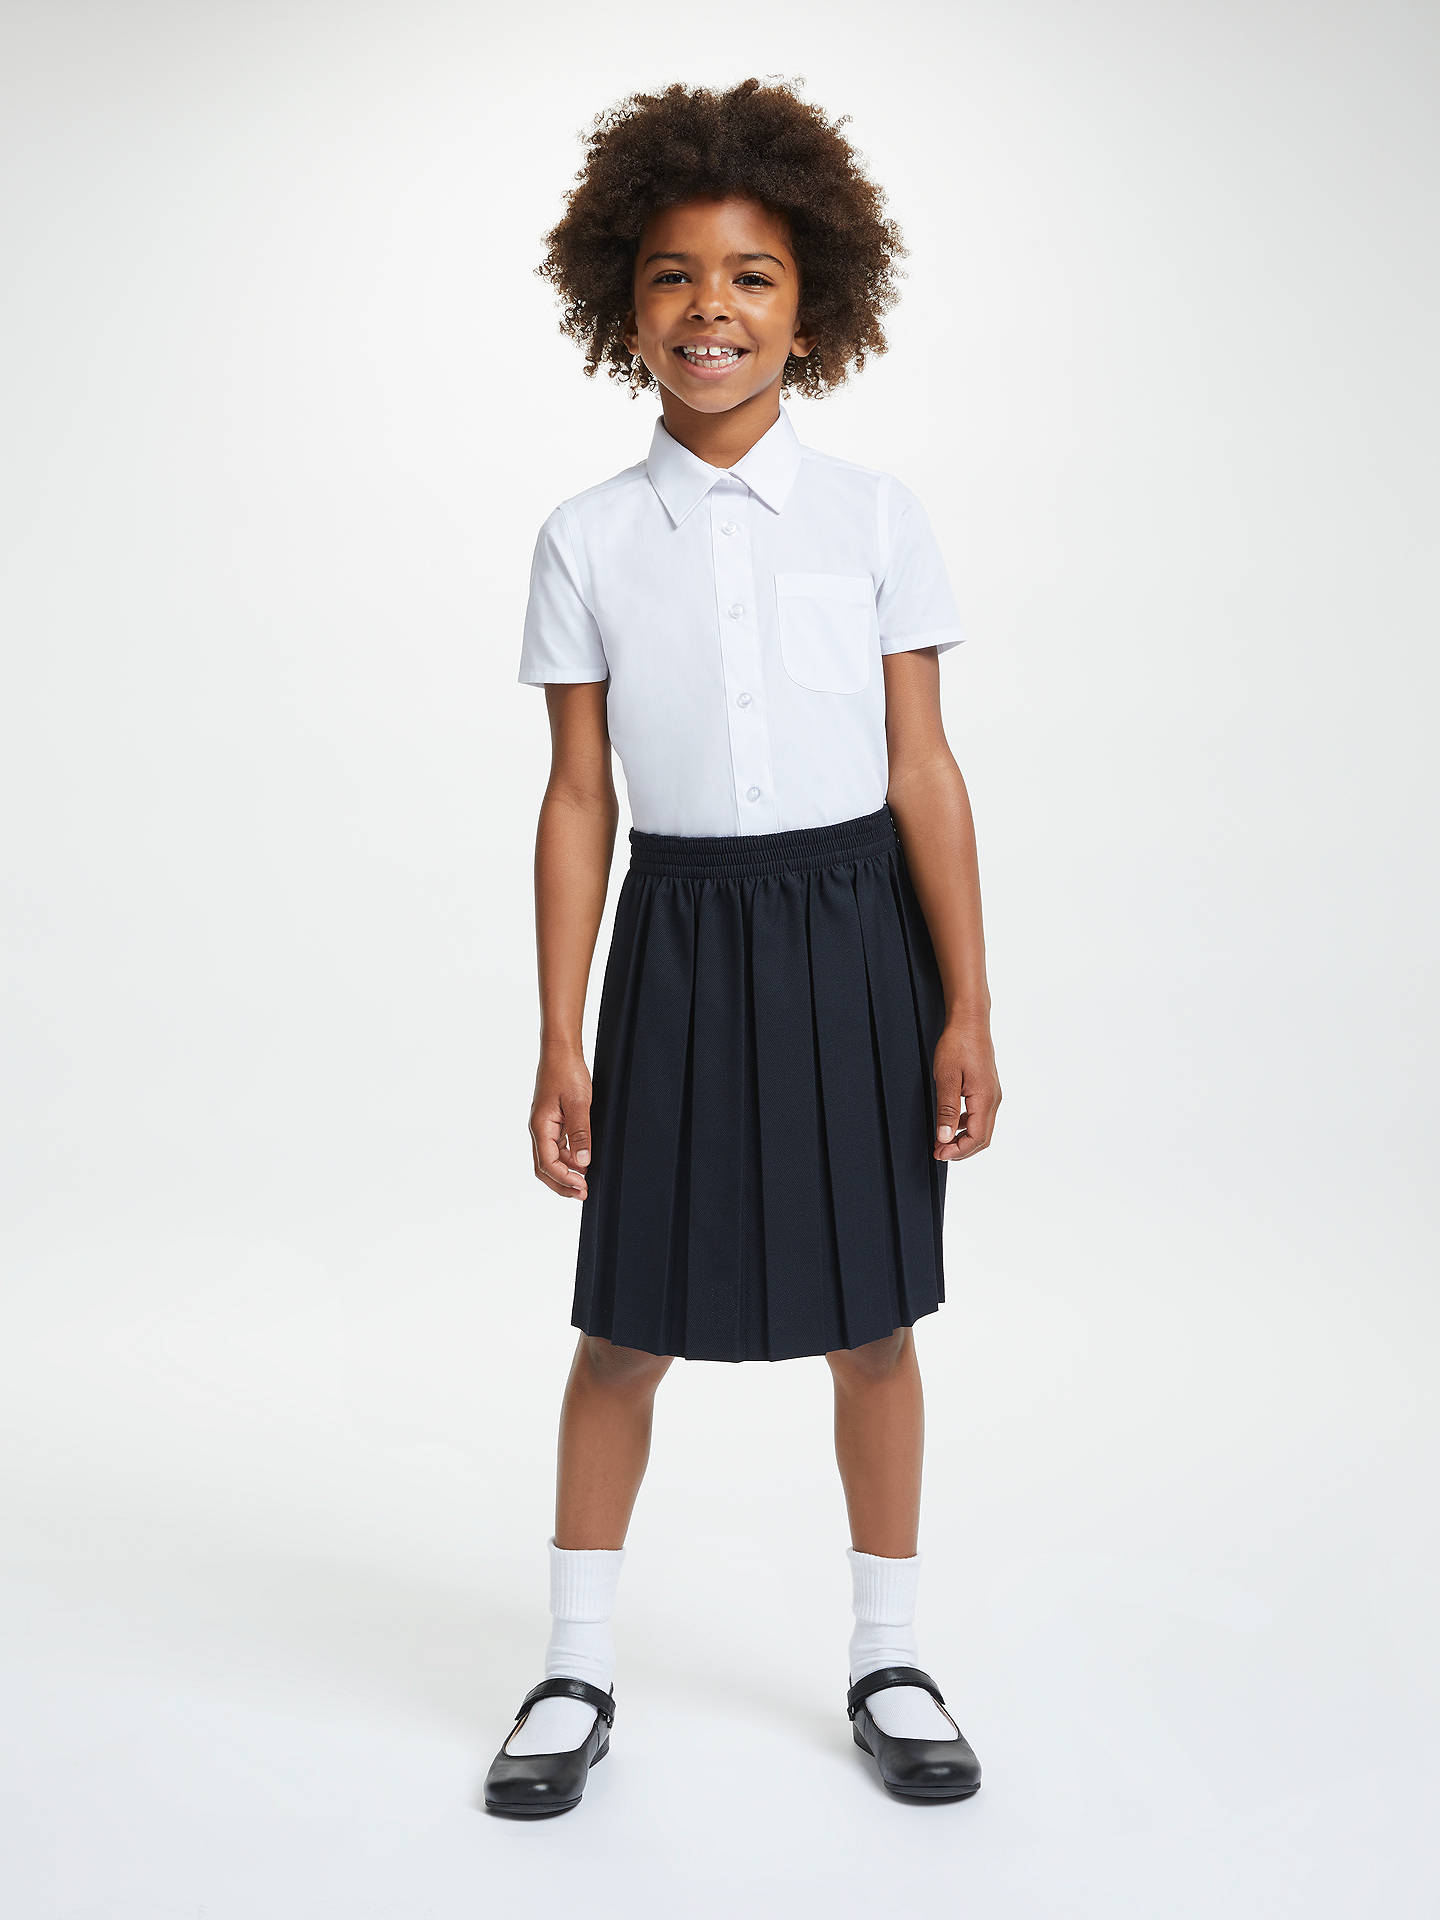 Buy John Lewis & Partners Girls' Easy Care Button Neck Short Sleeve School Shirt, Pack of 2, White, 5 years Online at johnlewis.com